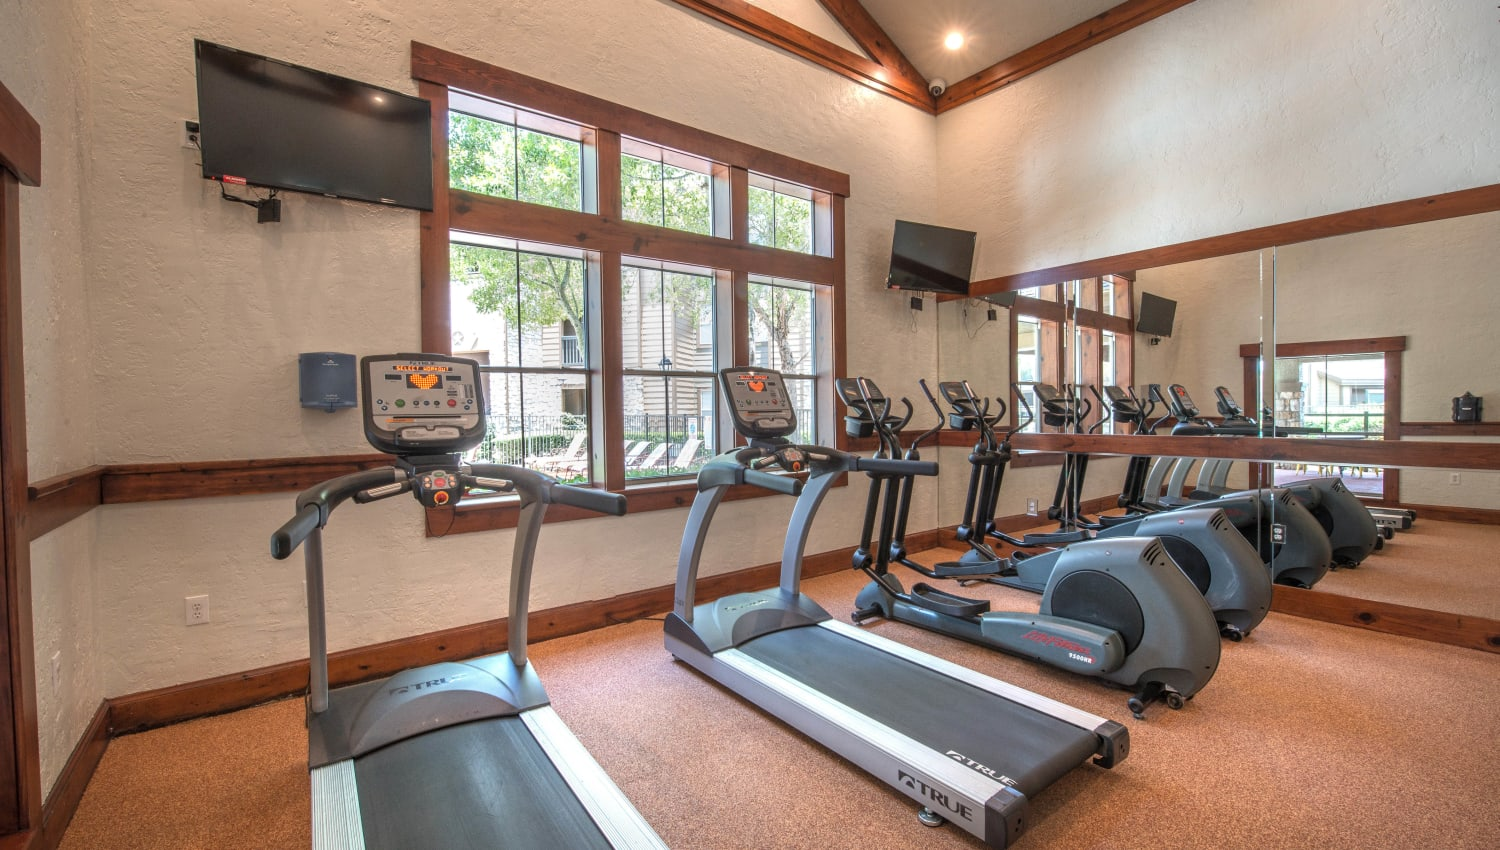 Treadmills in the fitness center at The Ranch at Shadow Lake in Houston, Texas